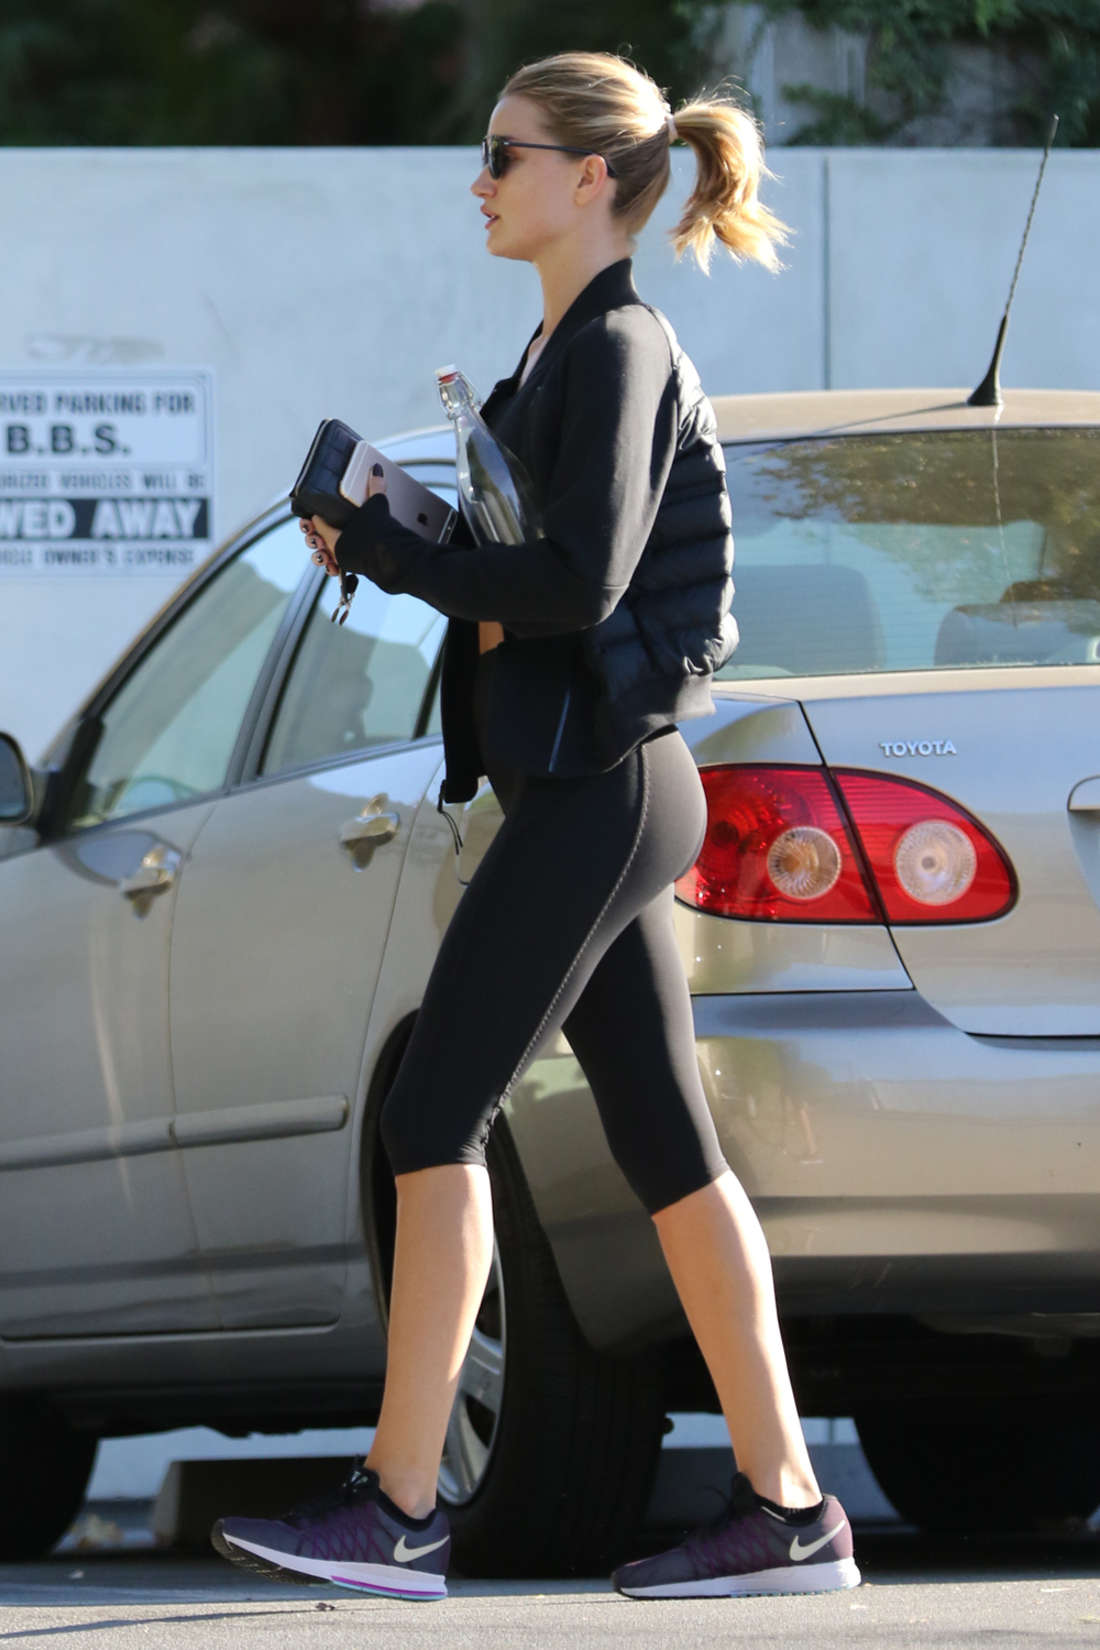 Rosie Huntington Whiteley Leaving a Gym in LA